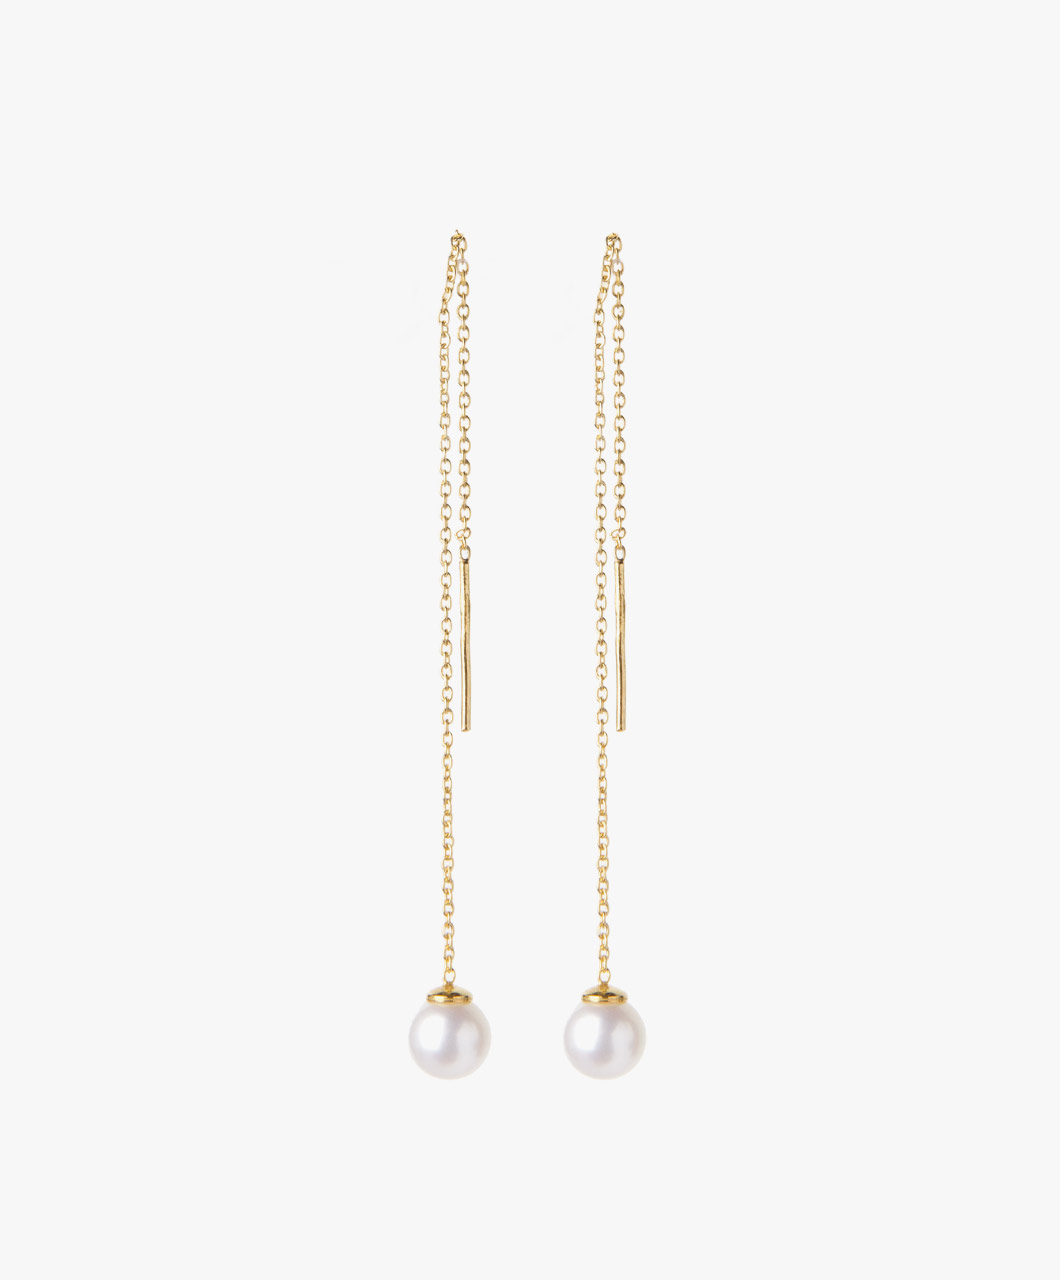 Susanne Friis Bjørner Pull Through Earrings - Gilded Silver/Freshwater Pearl